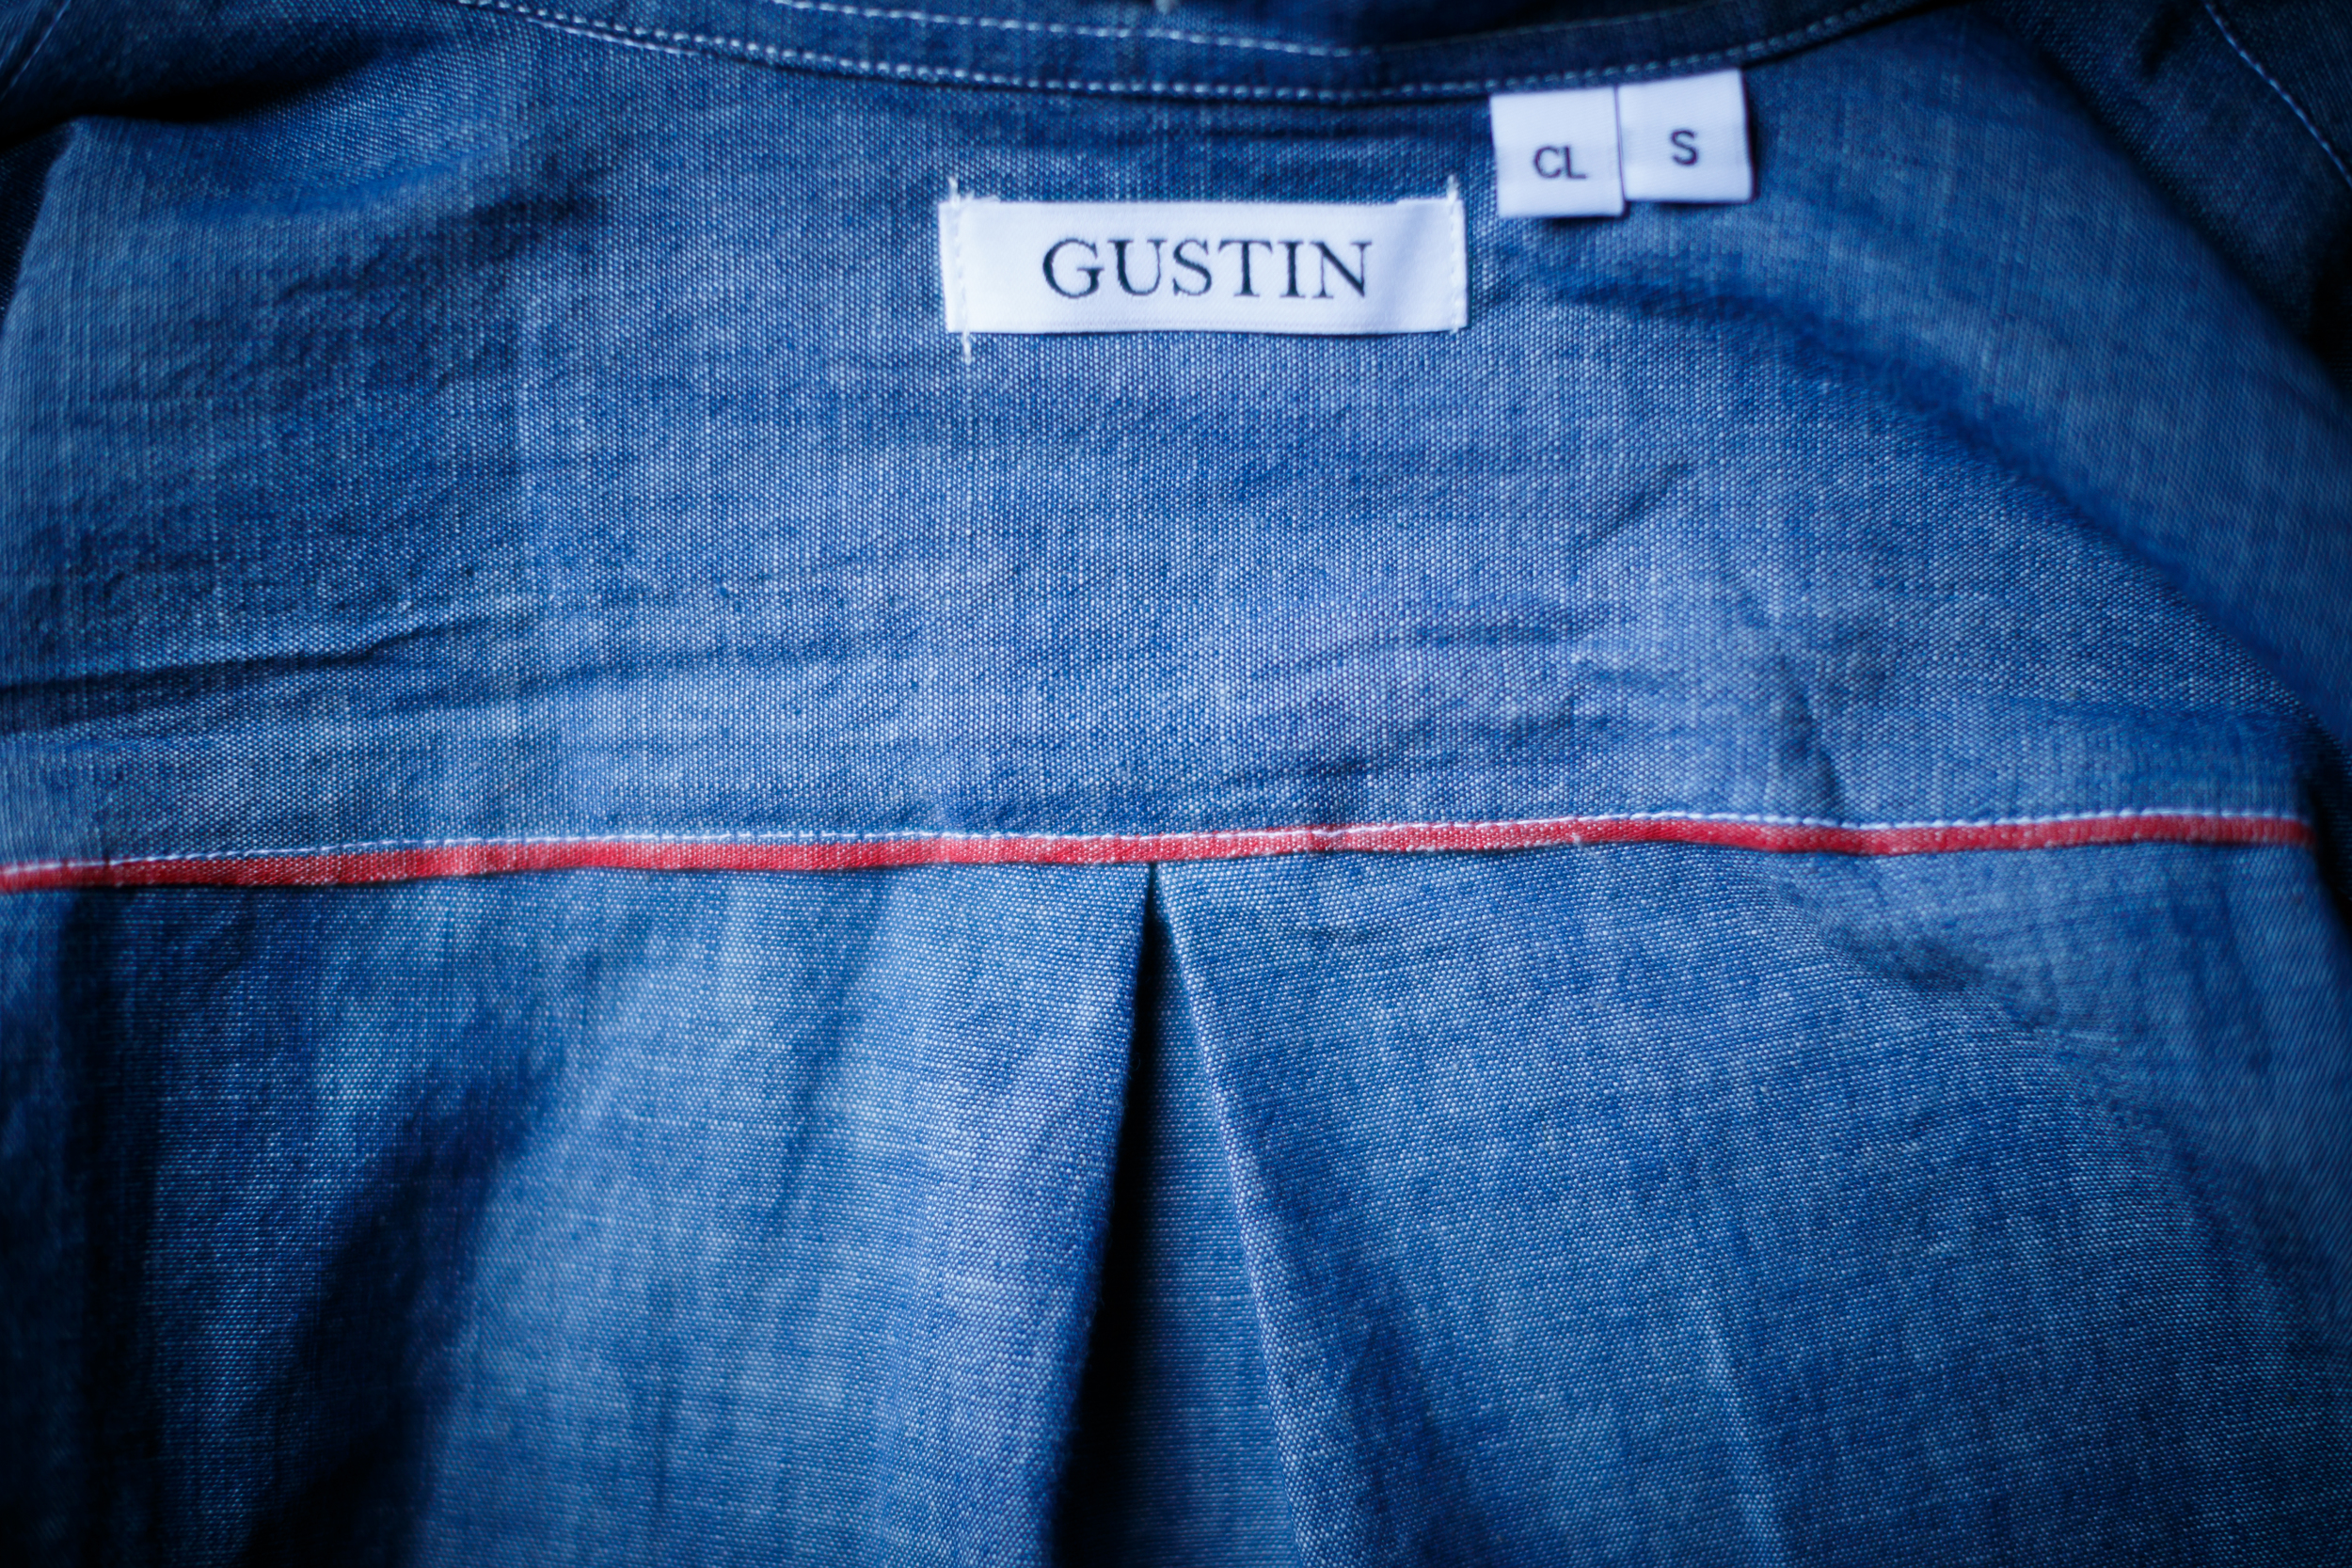 Gustin Indigo Plant-Dye Chambray Selvedge Shirt Japanese Japan Selvage Self Edge Denim Button Up Down San Francisco USA Made in US